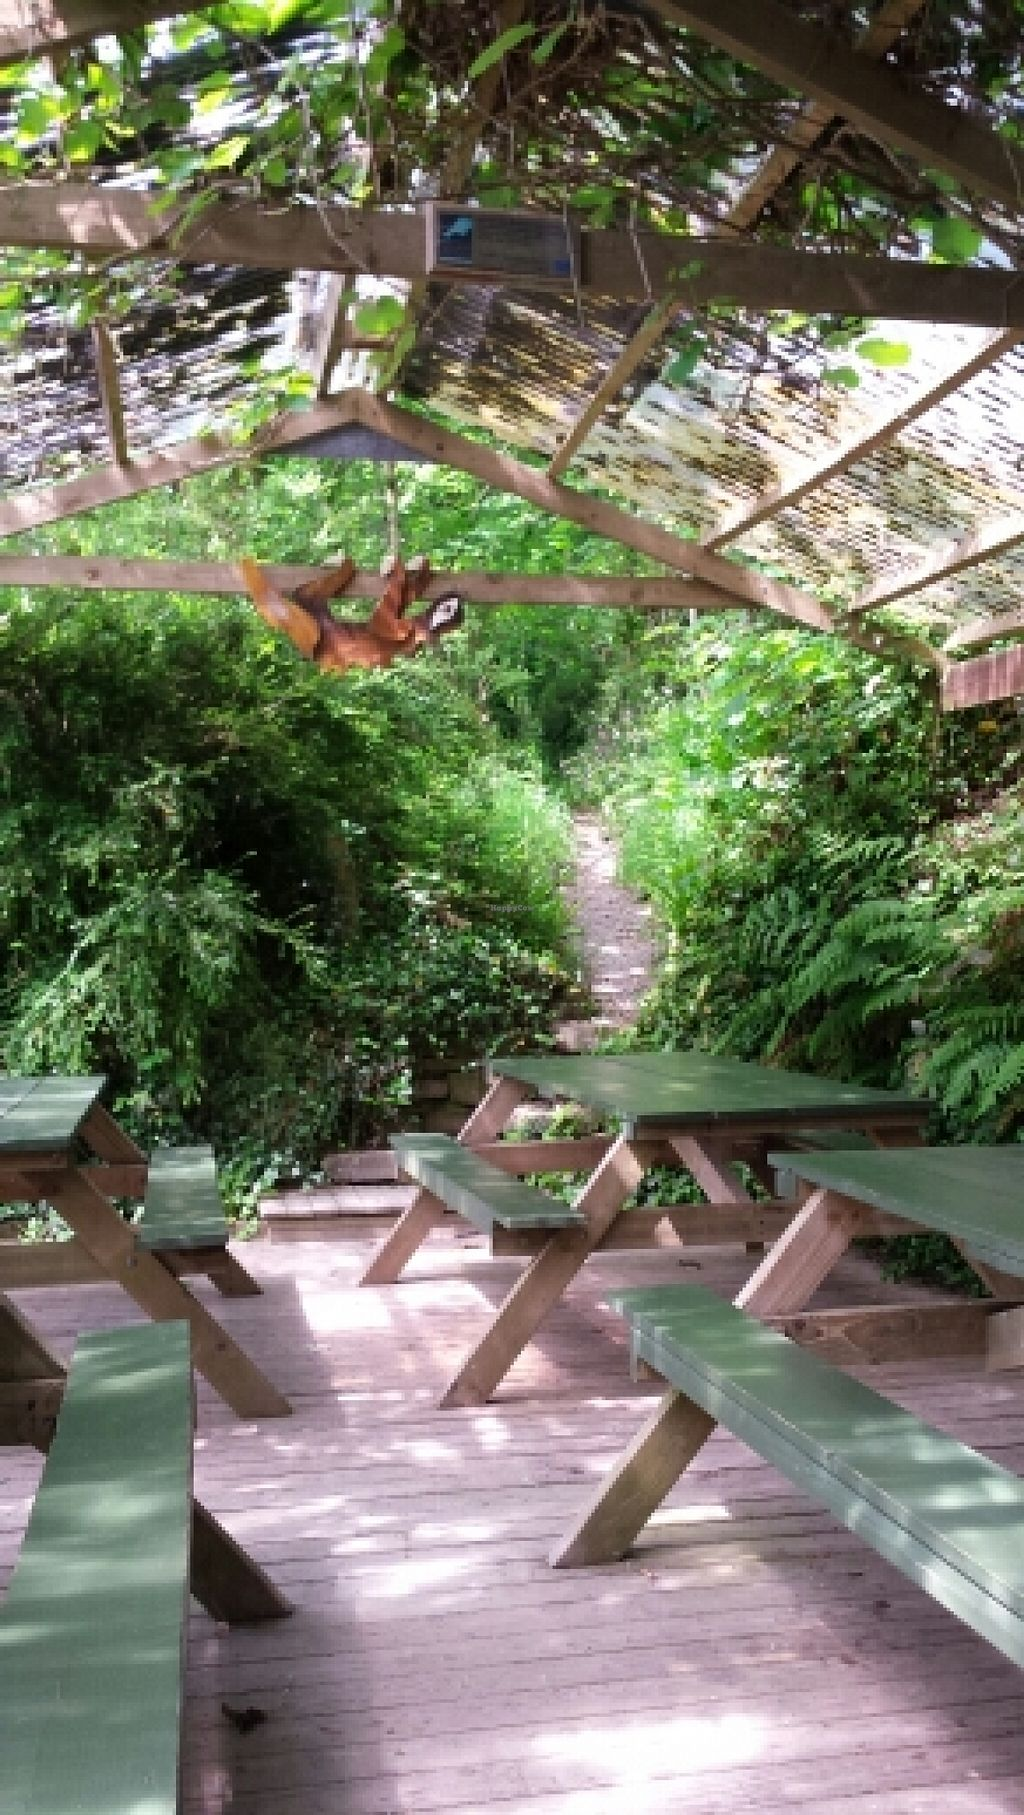 """Photo of Tree-Top Cafe  by <a href=""""/members/profile/Good%20for%20Vegans"""">Good for Vegans</a> <br/>Seating area <br/> June 2, 2016  - <a href='/contact/abuse/image/11818/151908'>Report</a>"""